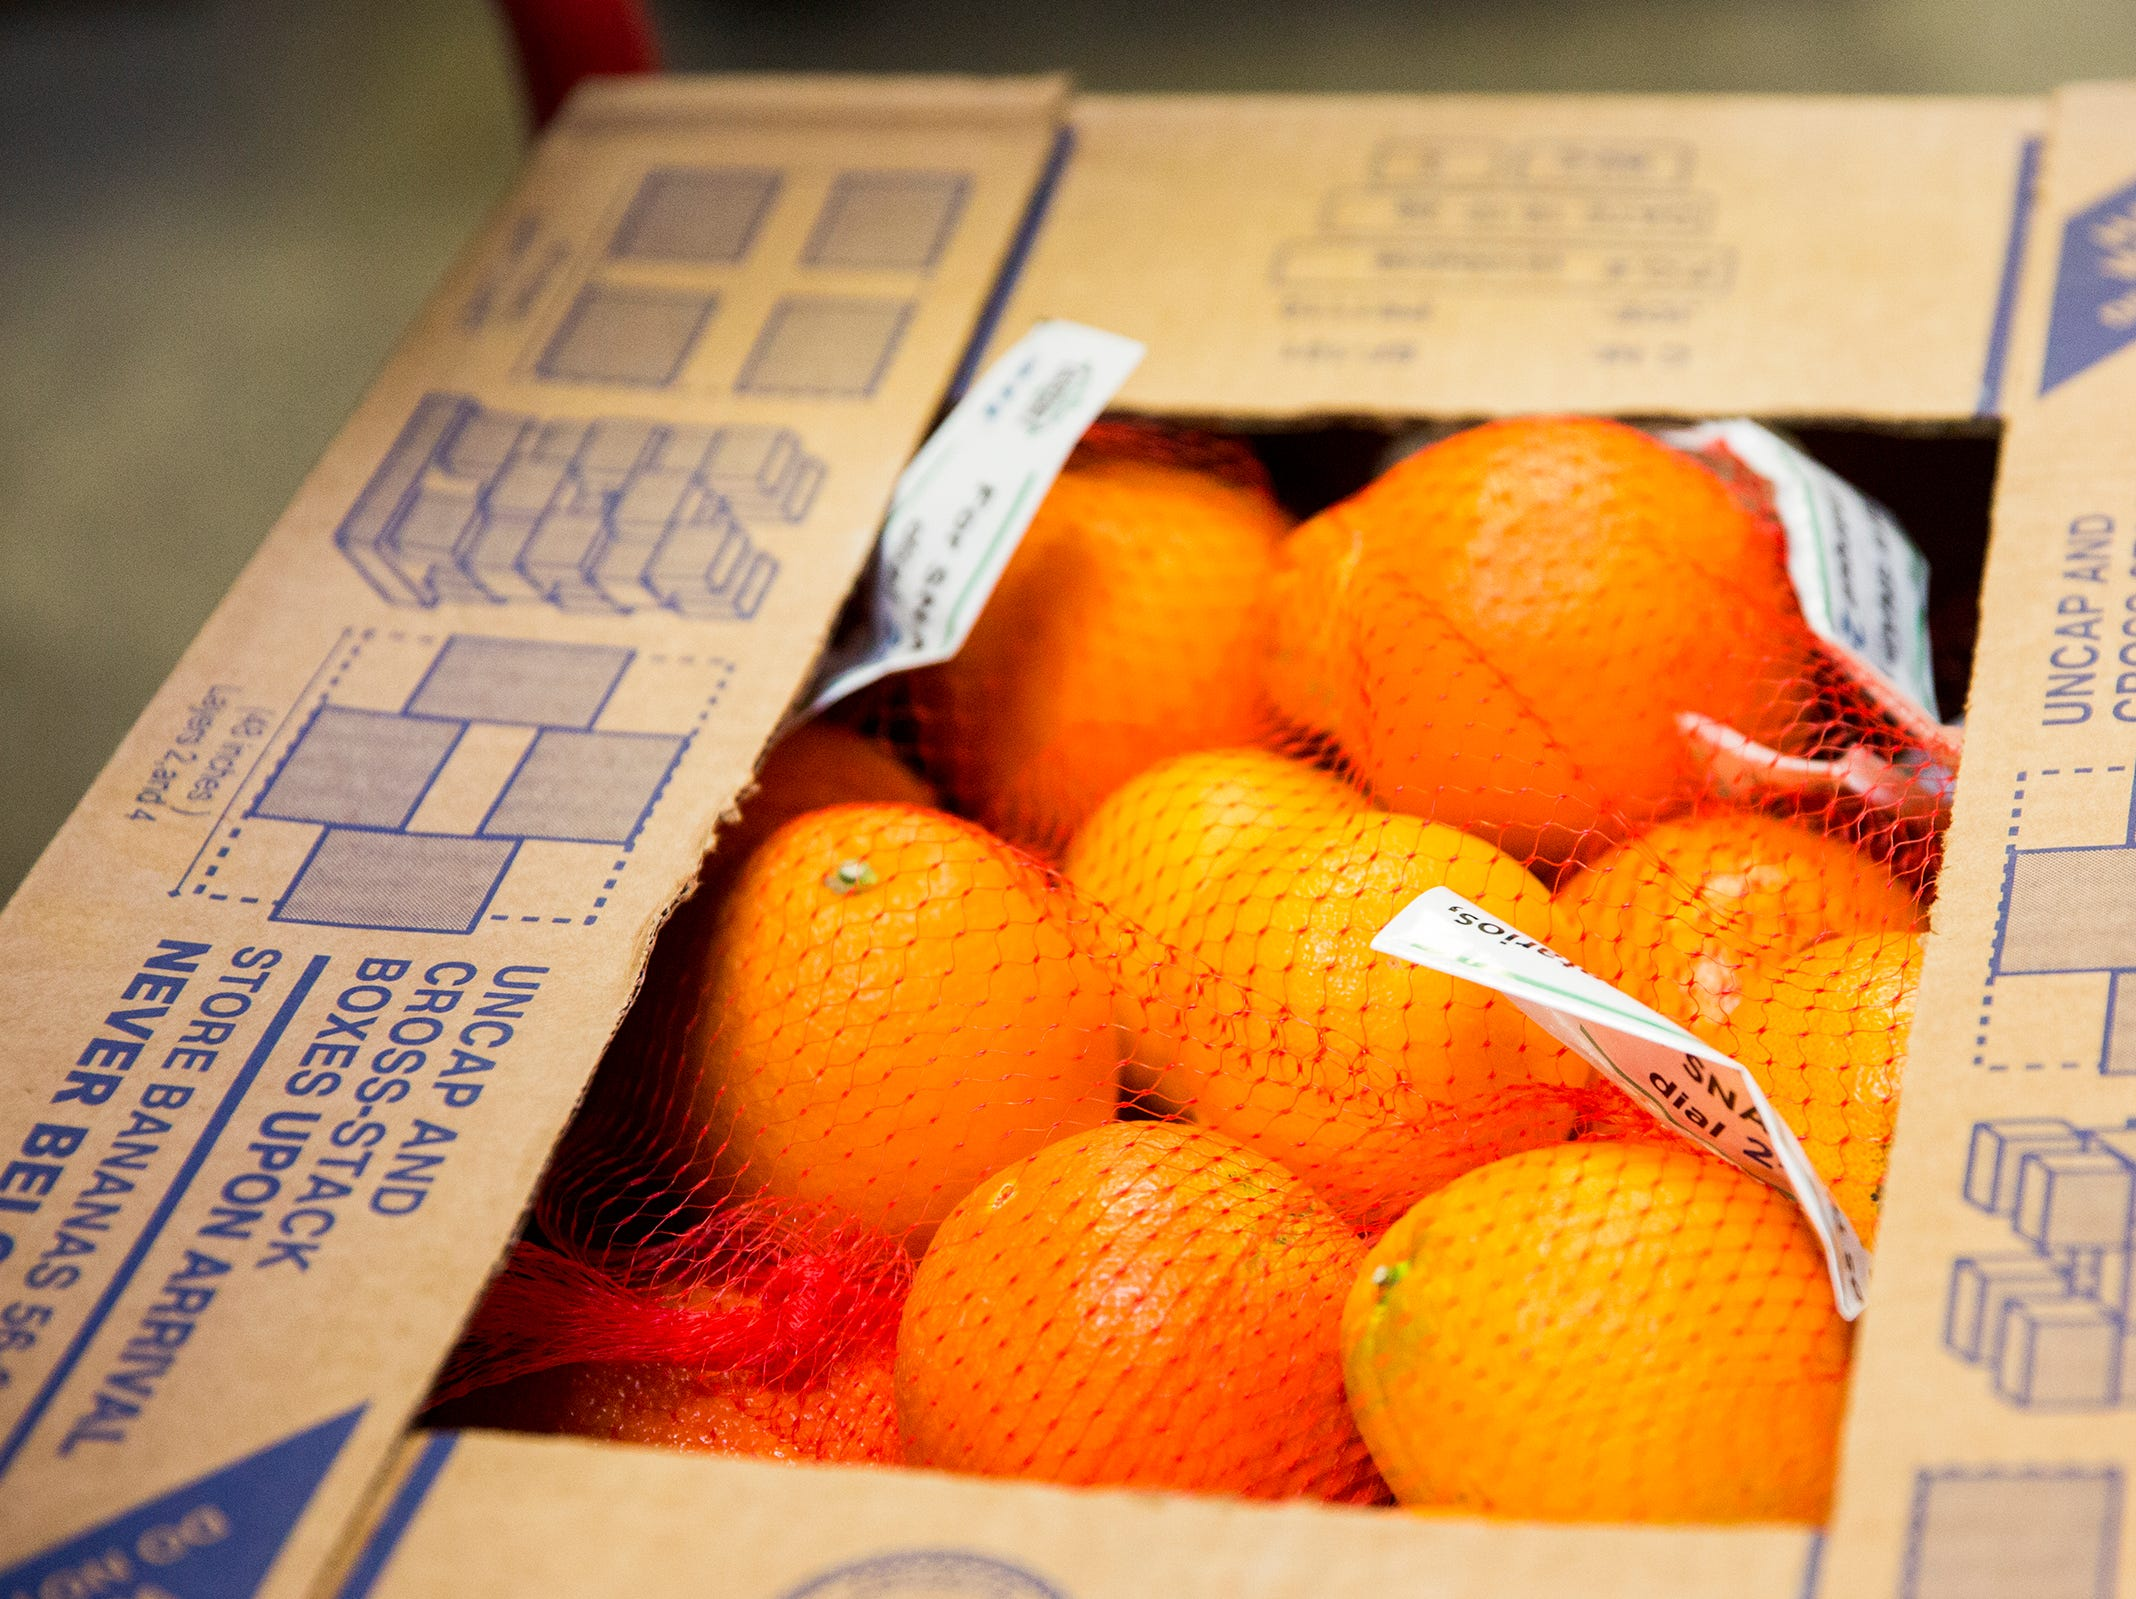 Oranges are collected at the Marion-Polk Food Share on Friday, Dec. 7, 2018. It will be donated to the homeless community living at Wallace Park in Salem.